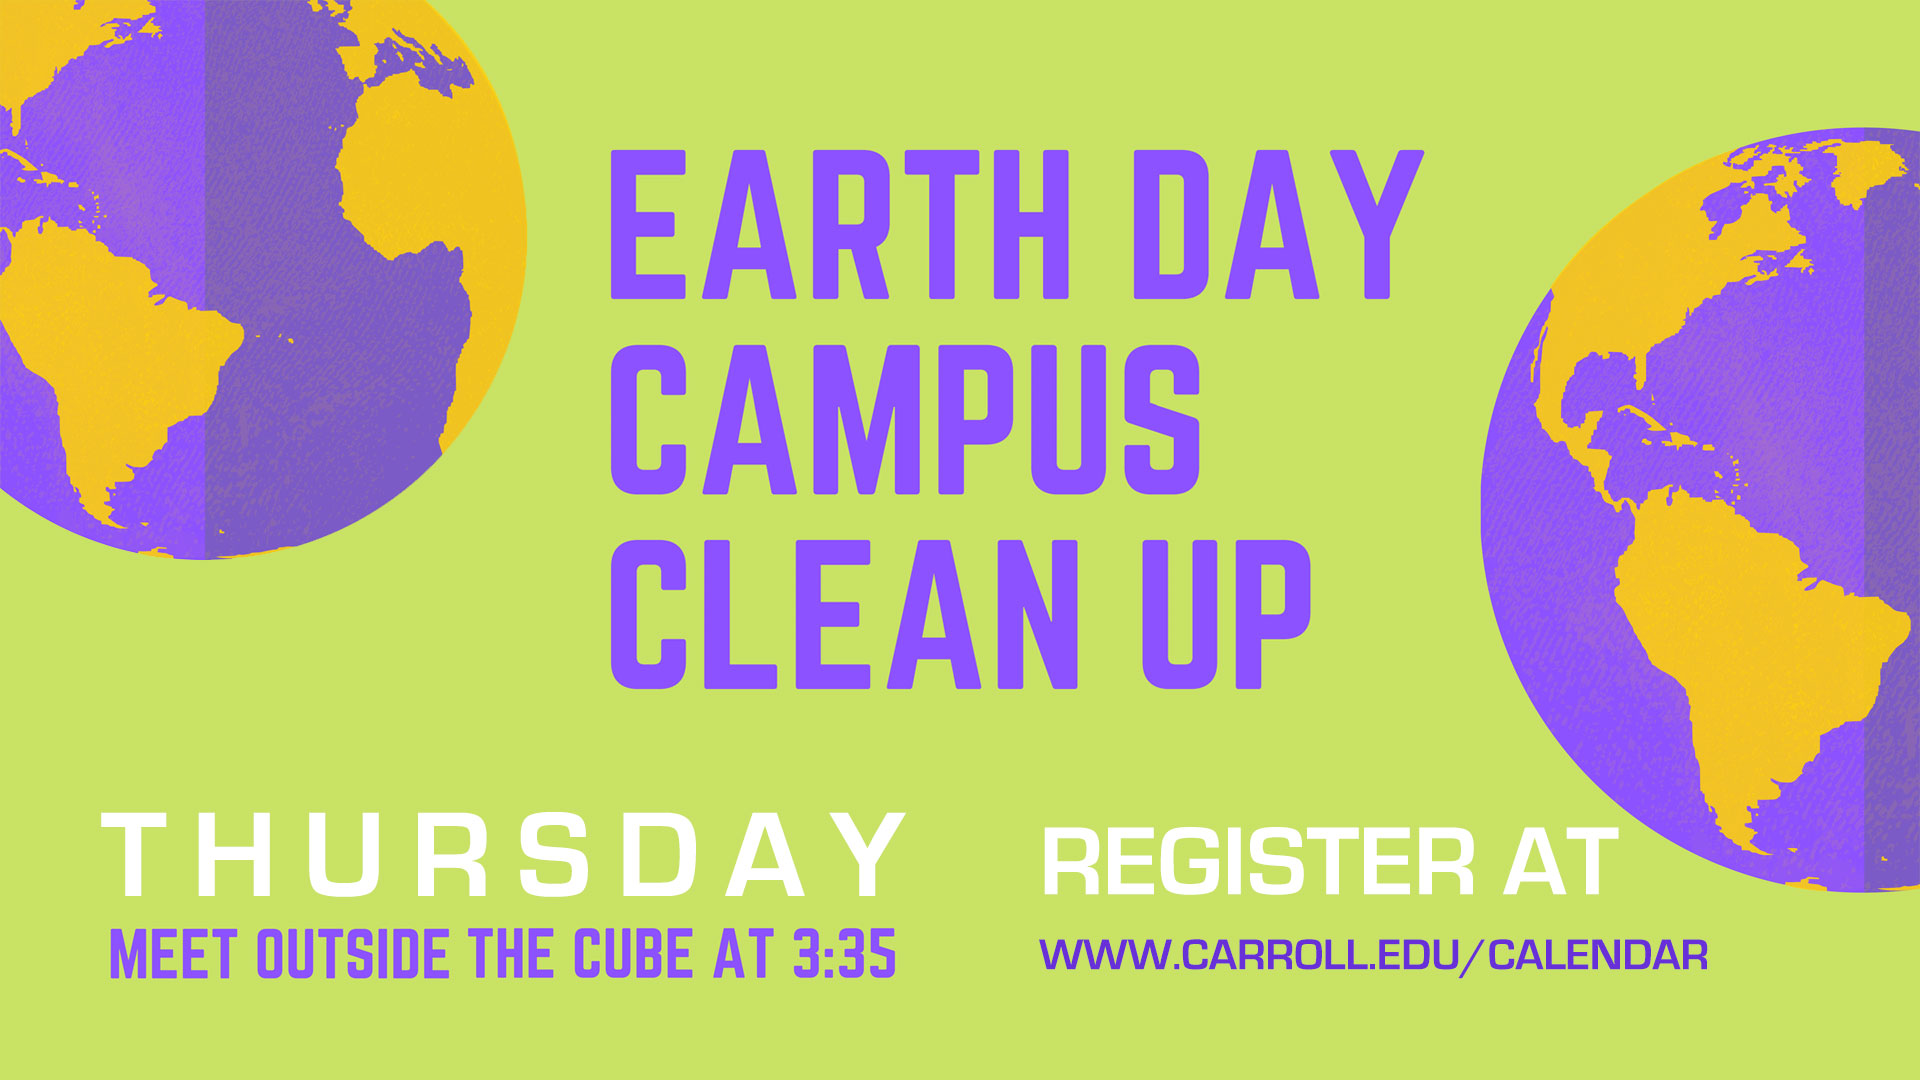 Earth Day Campus Cleanup graphic